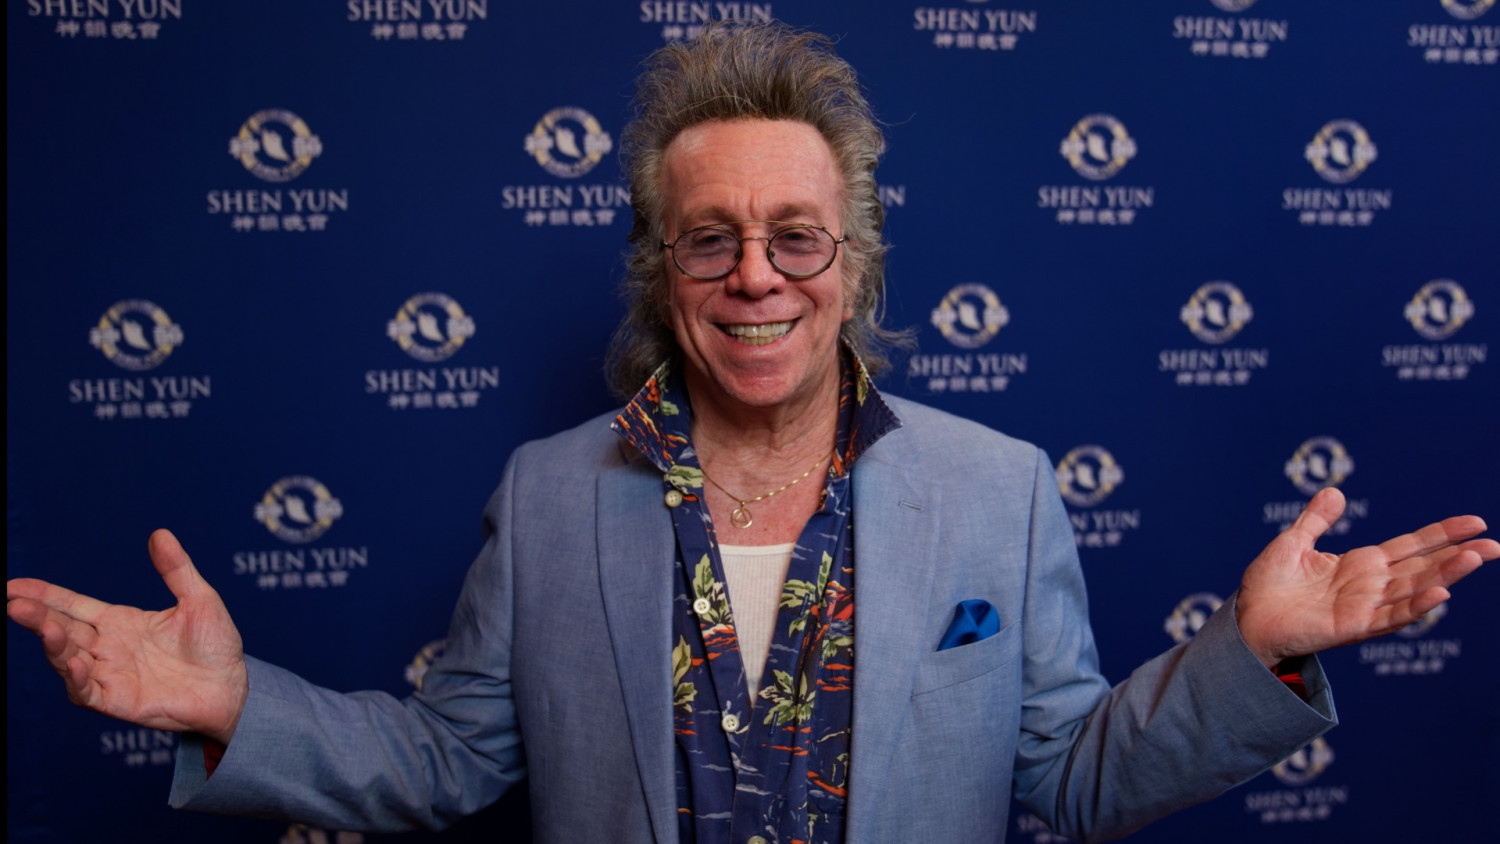 Shen Yun Transmits 'Beautiful Positive Energy' to Audience: Well-Known Comedian